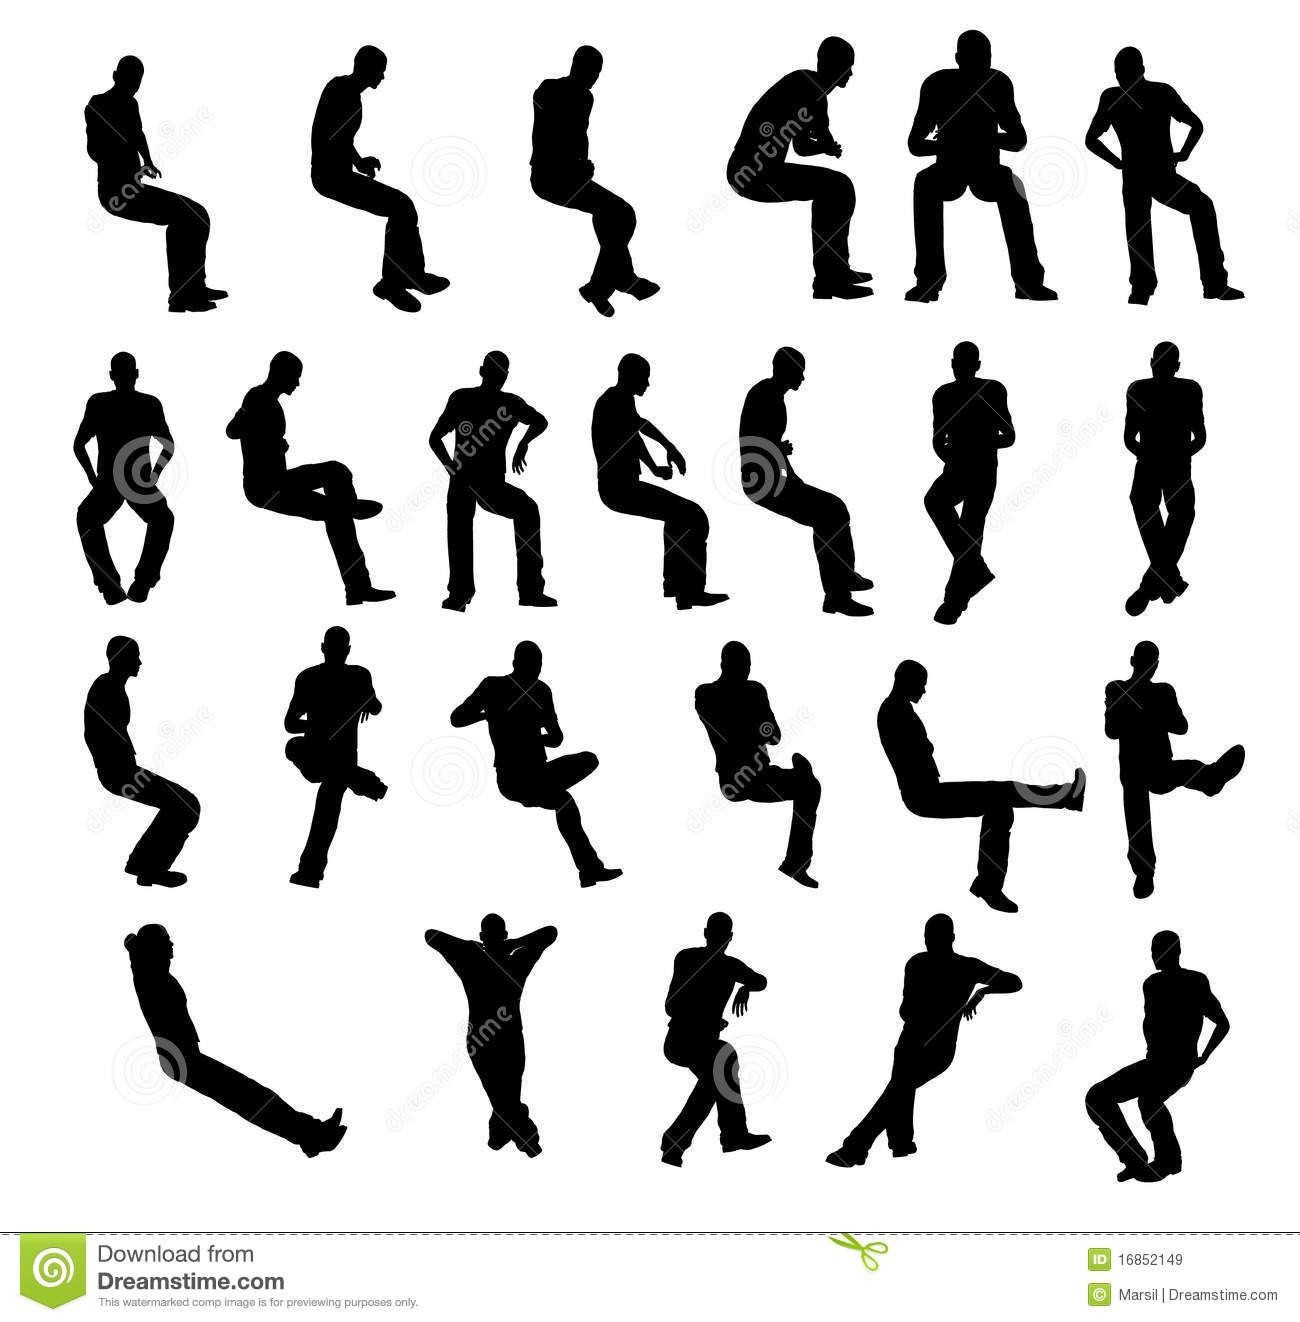 silhouette-man-sitting-16852149.jpg (800×758) | Silhouettes and ...